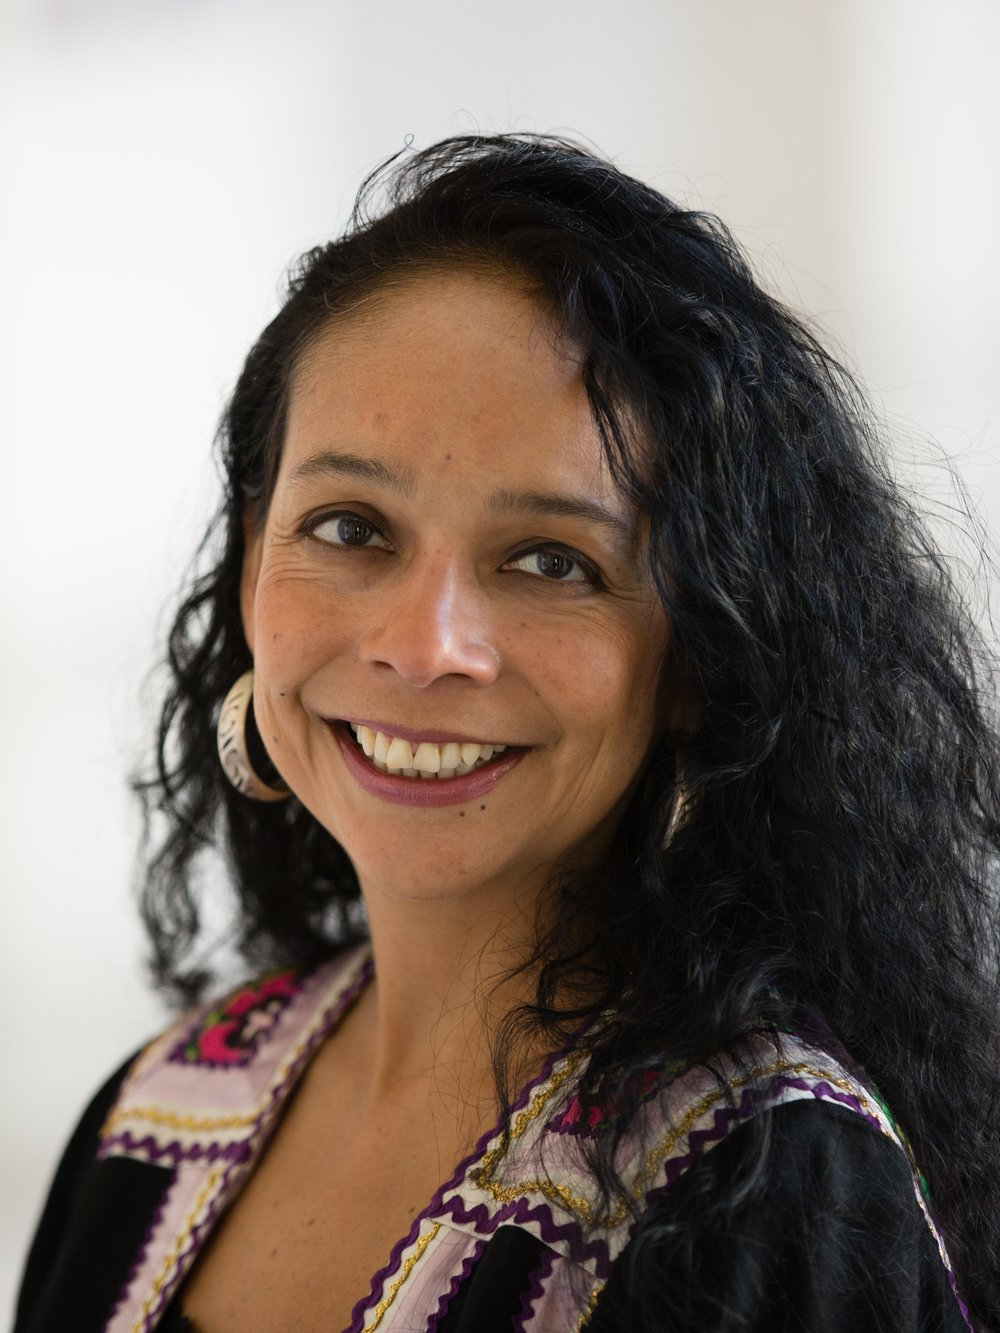 Professor Guadalupe Correa-Cabrera - Associate Professor at Schar School of Policy and Government, George Mason UniversityForthcoming article: The Myths of Central American Undocumented Immigration and MS-13 in the United States